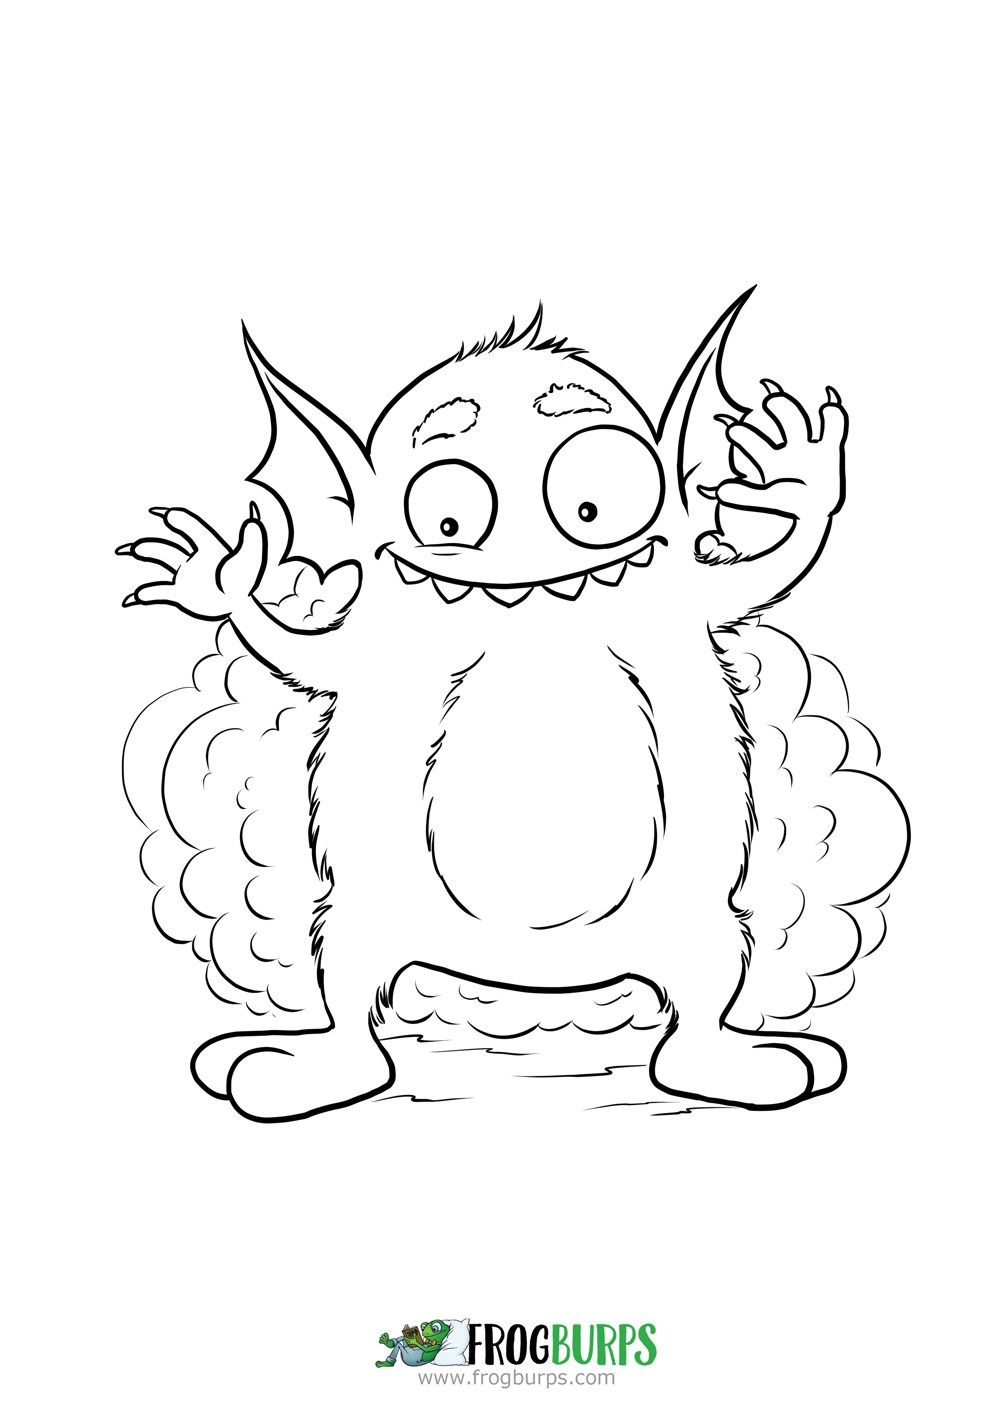 Silly Monster | Coloring Page | Frogburps Coloring Pages | Pinterest ...